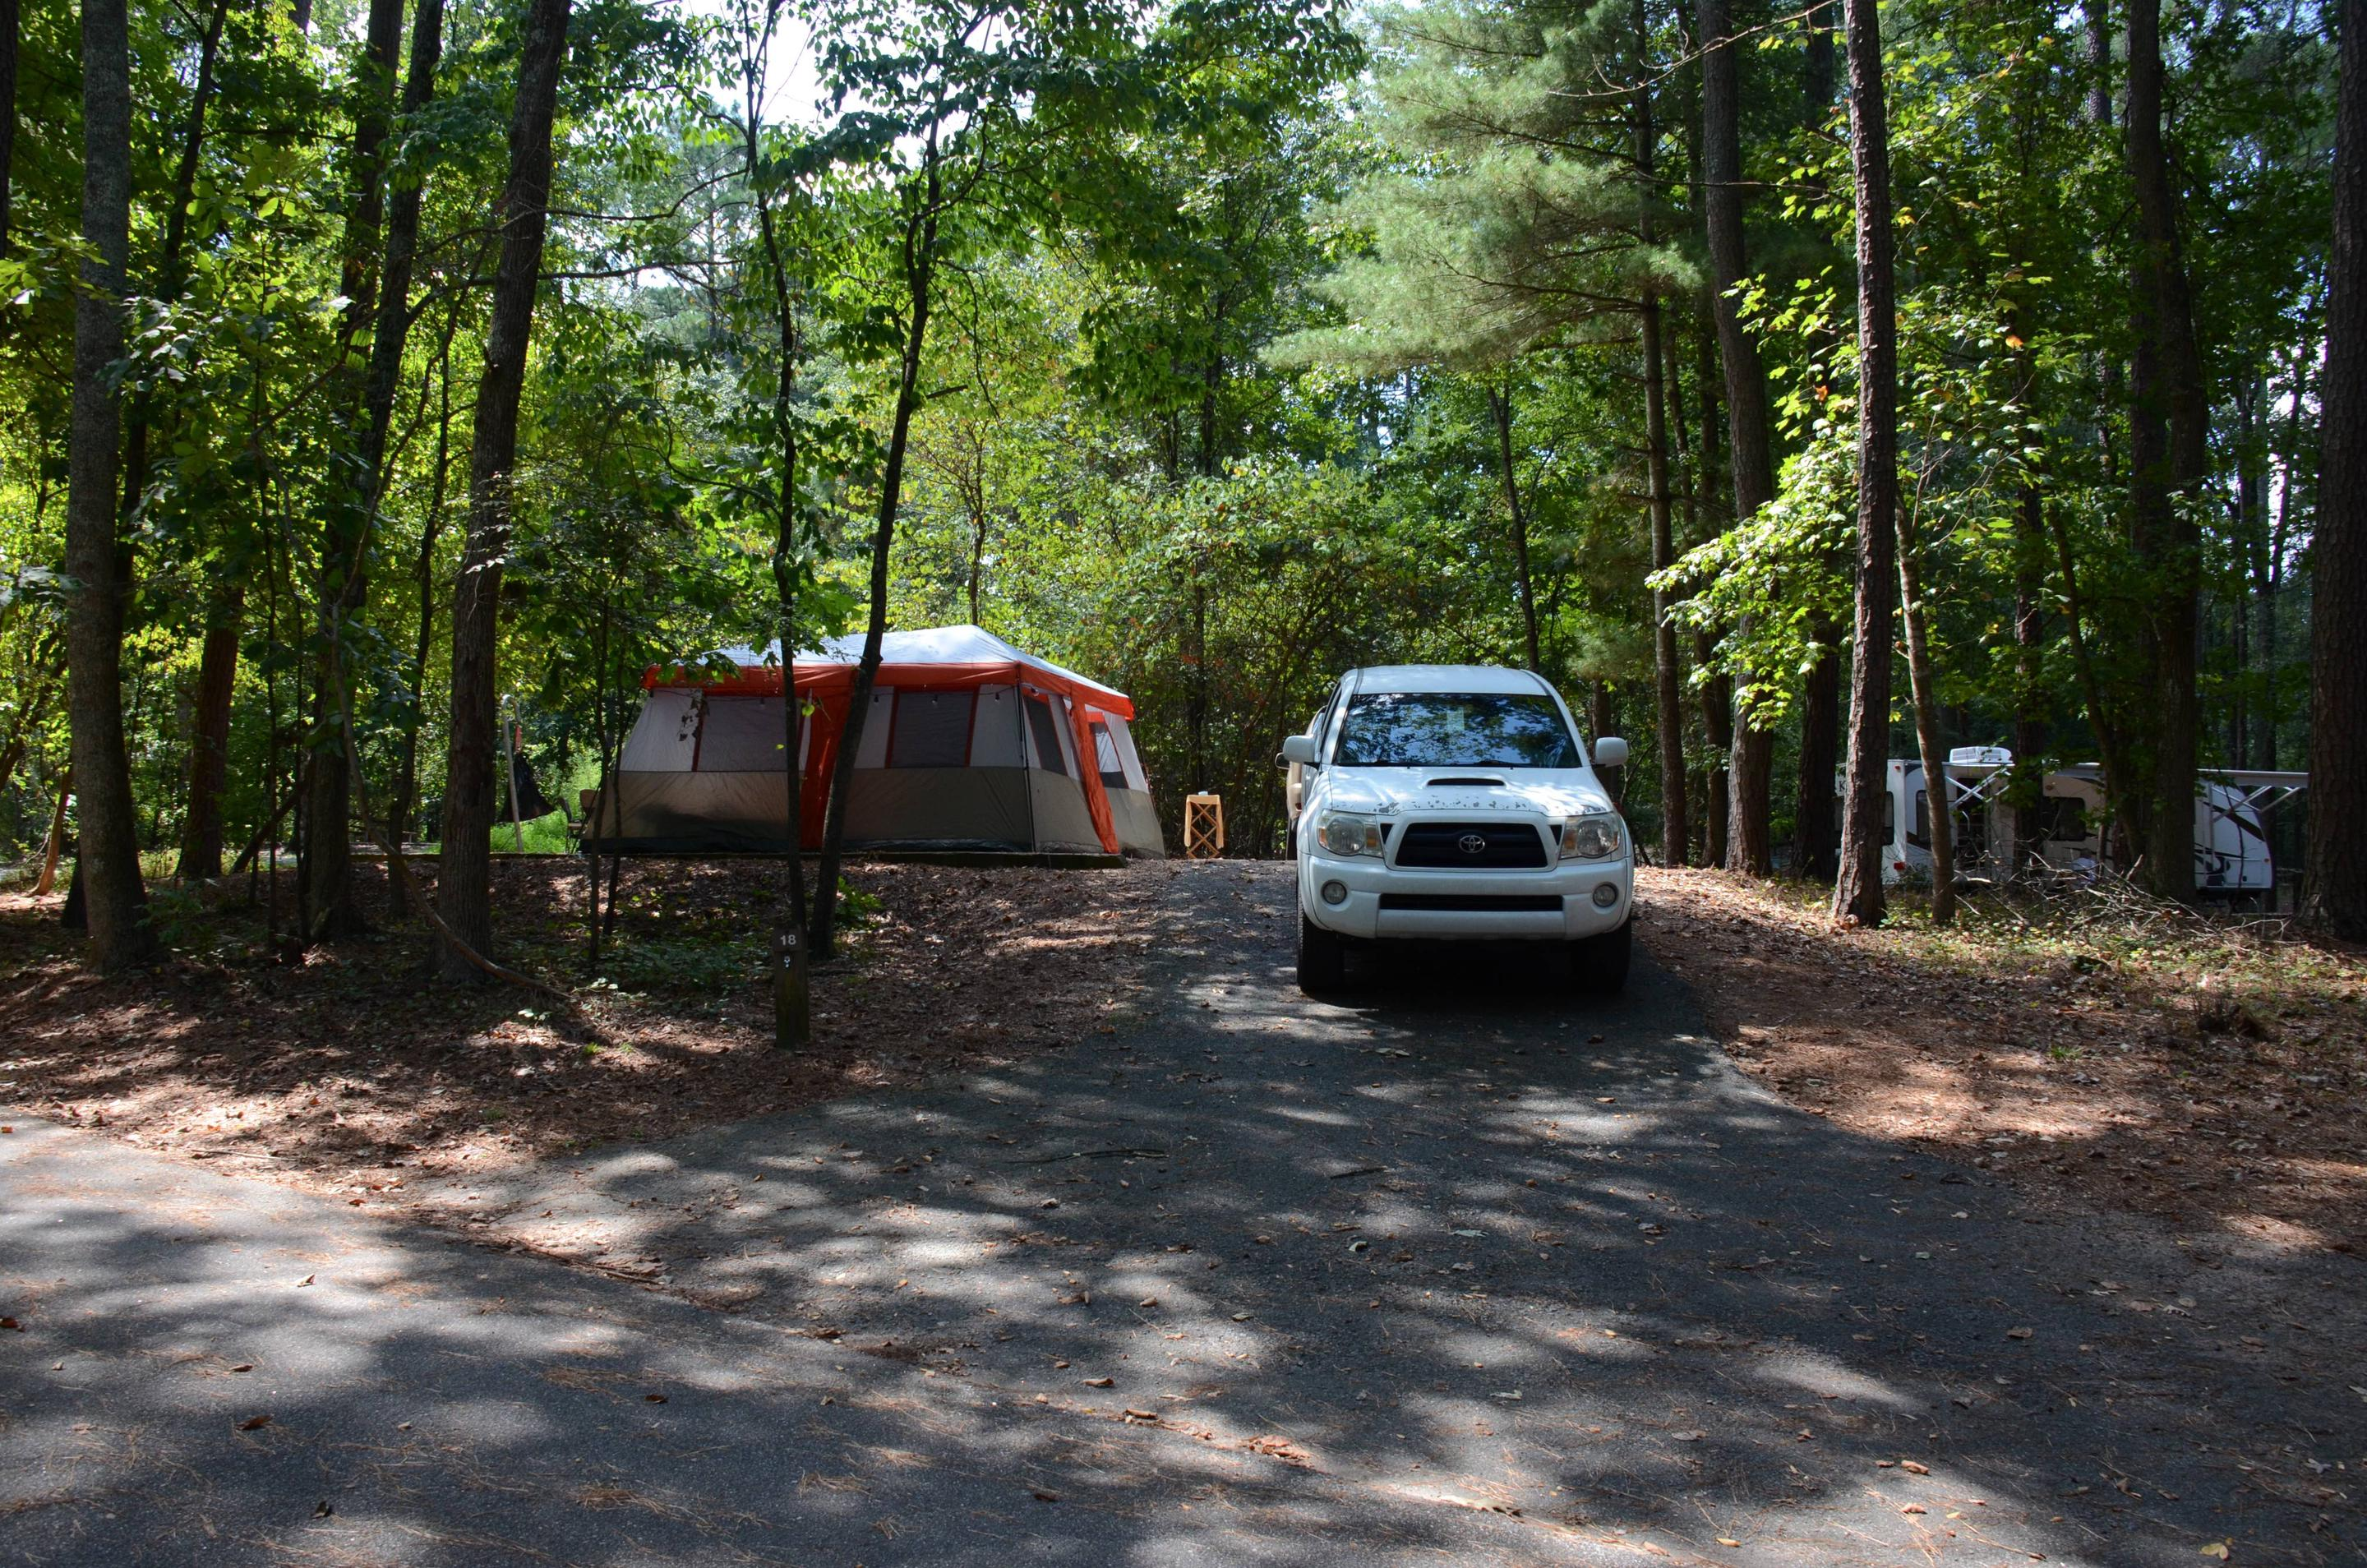 Driveway slope, awning-side clearance.McKinney Campground, campsite 18.